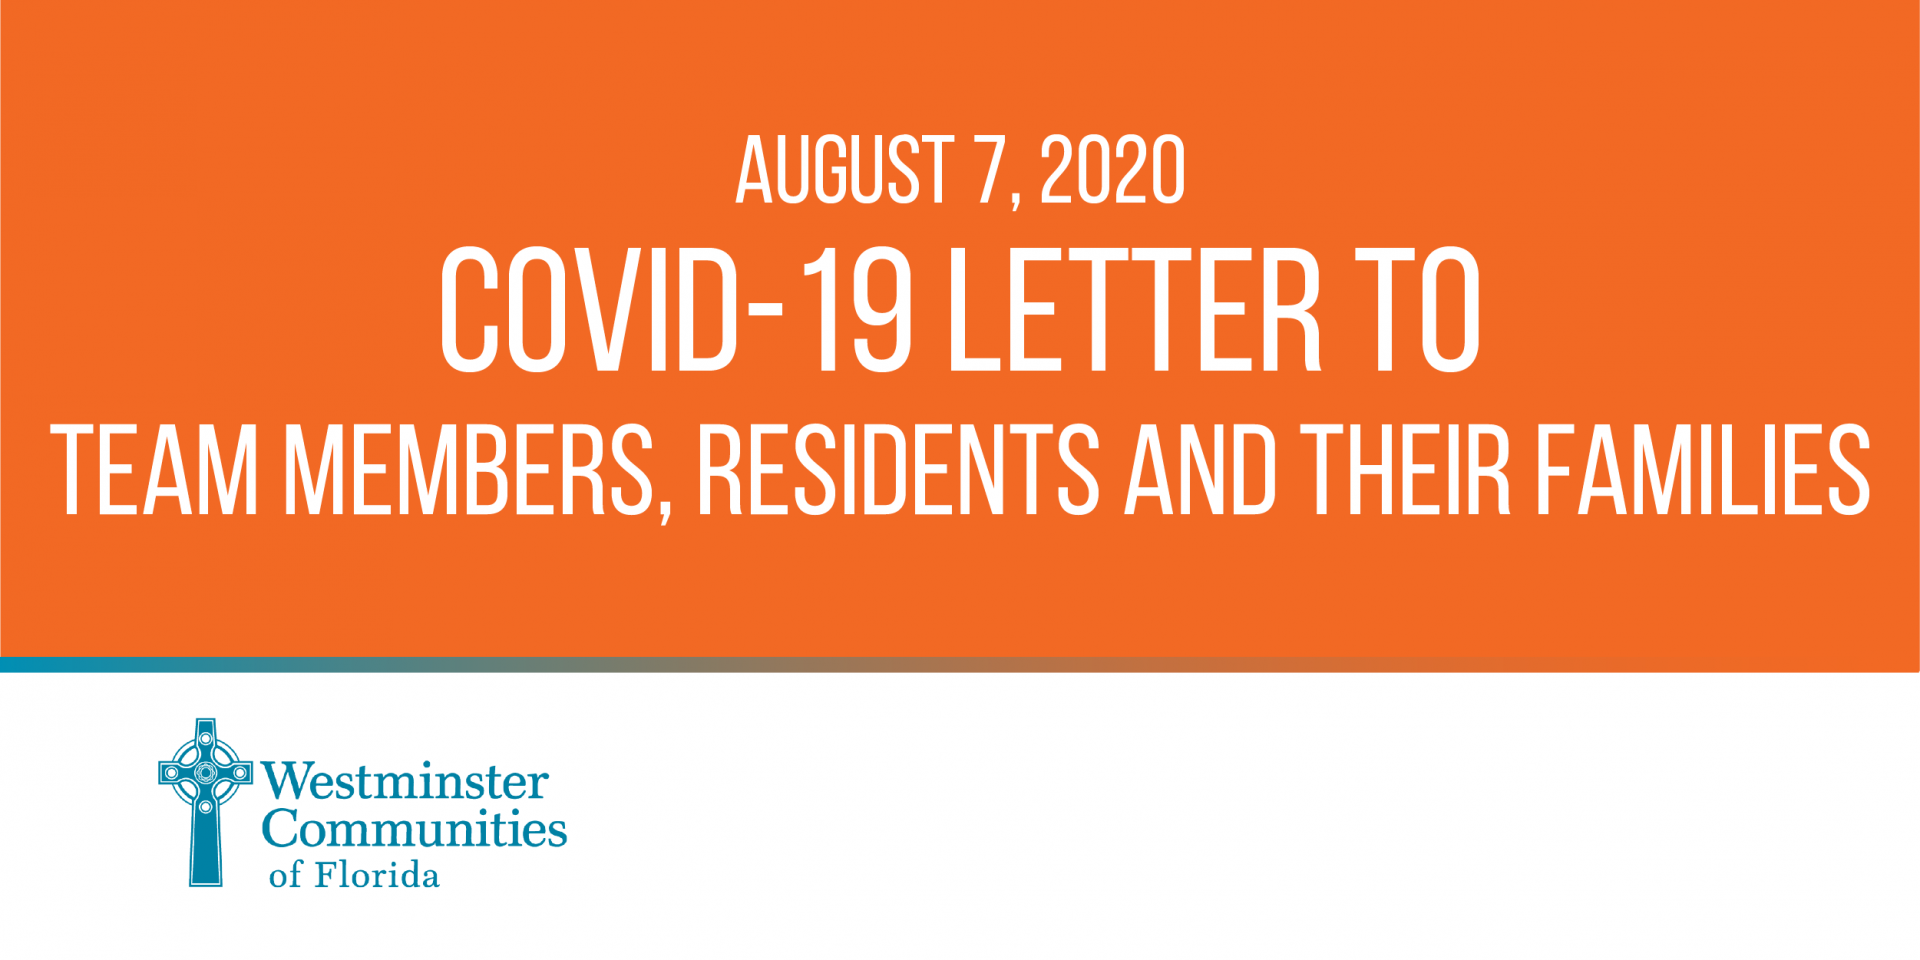 August 7, 2020 COVID-19 Letter